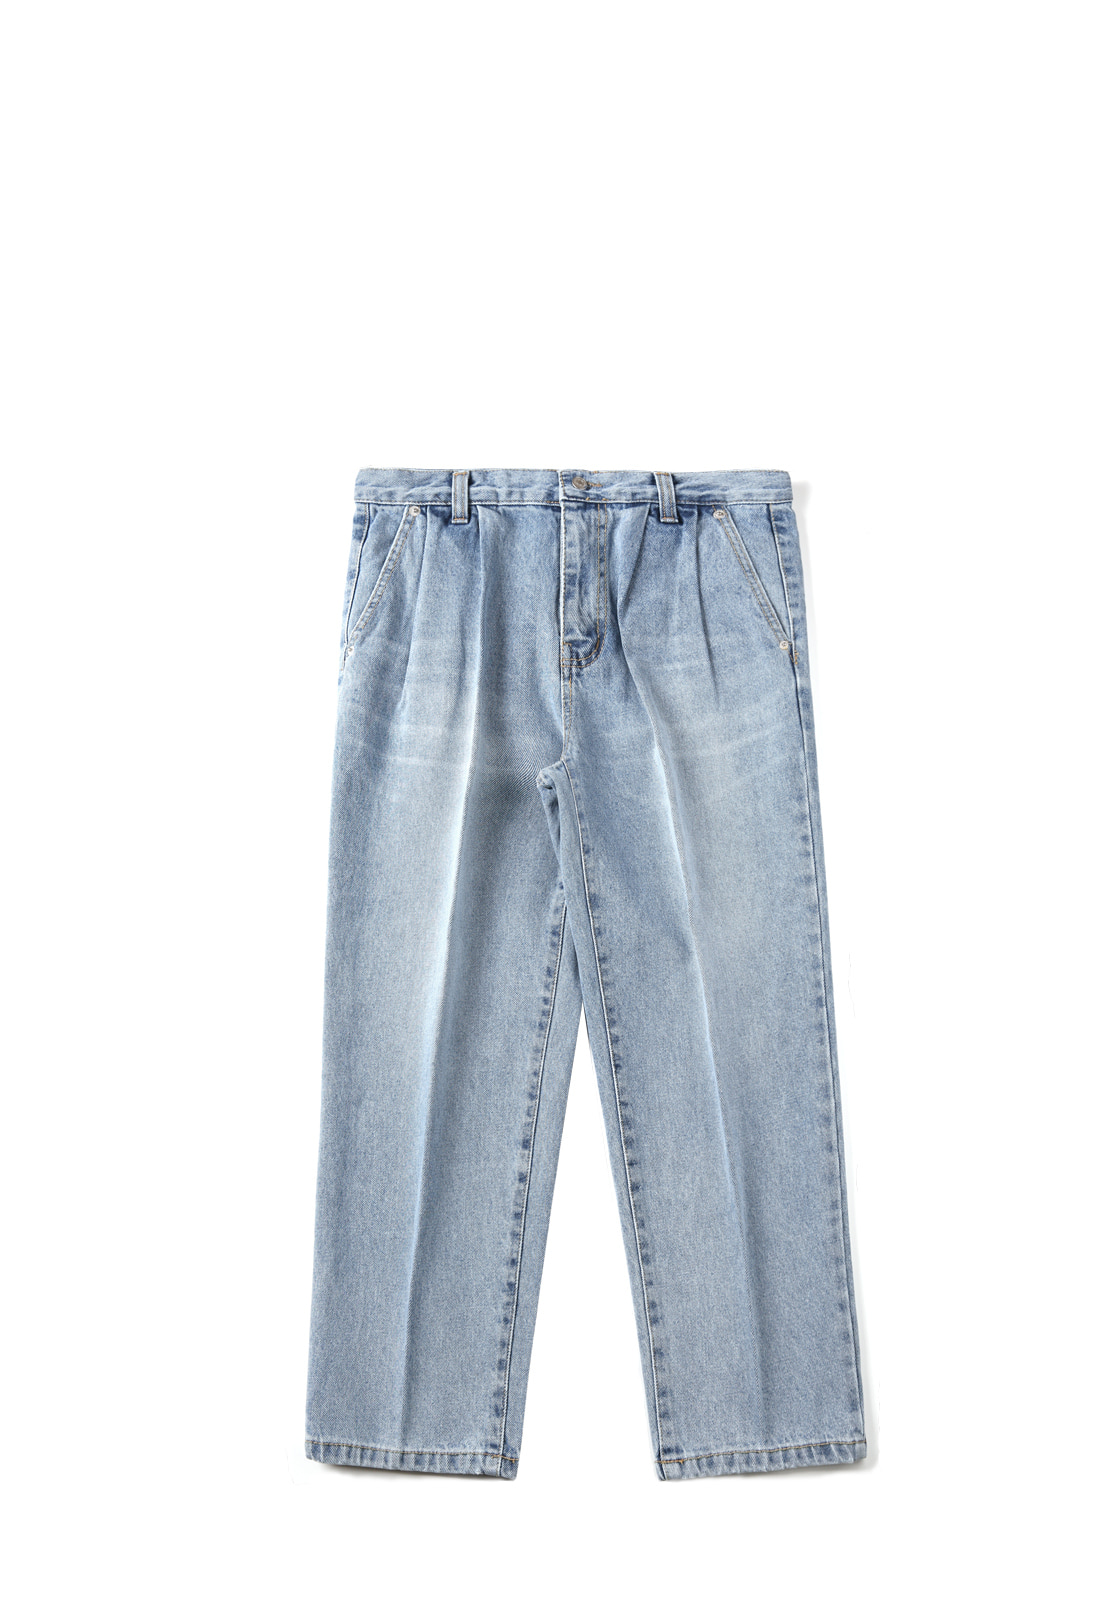 V233 TWO TUCK RETRO DENIM PANTS  LIGHT BLUE